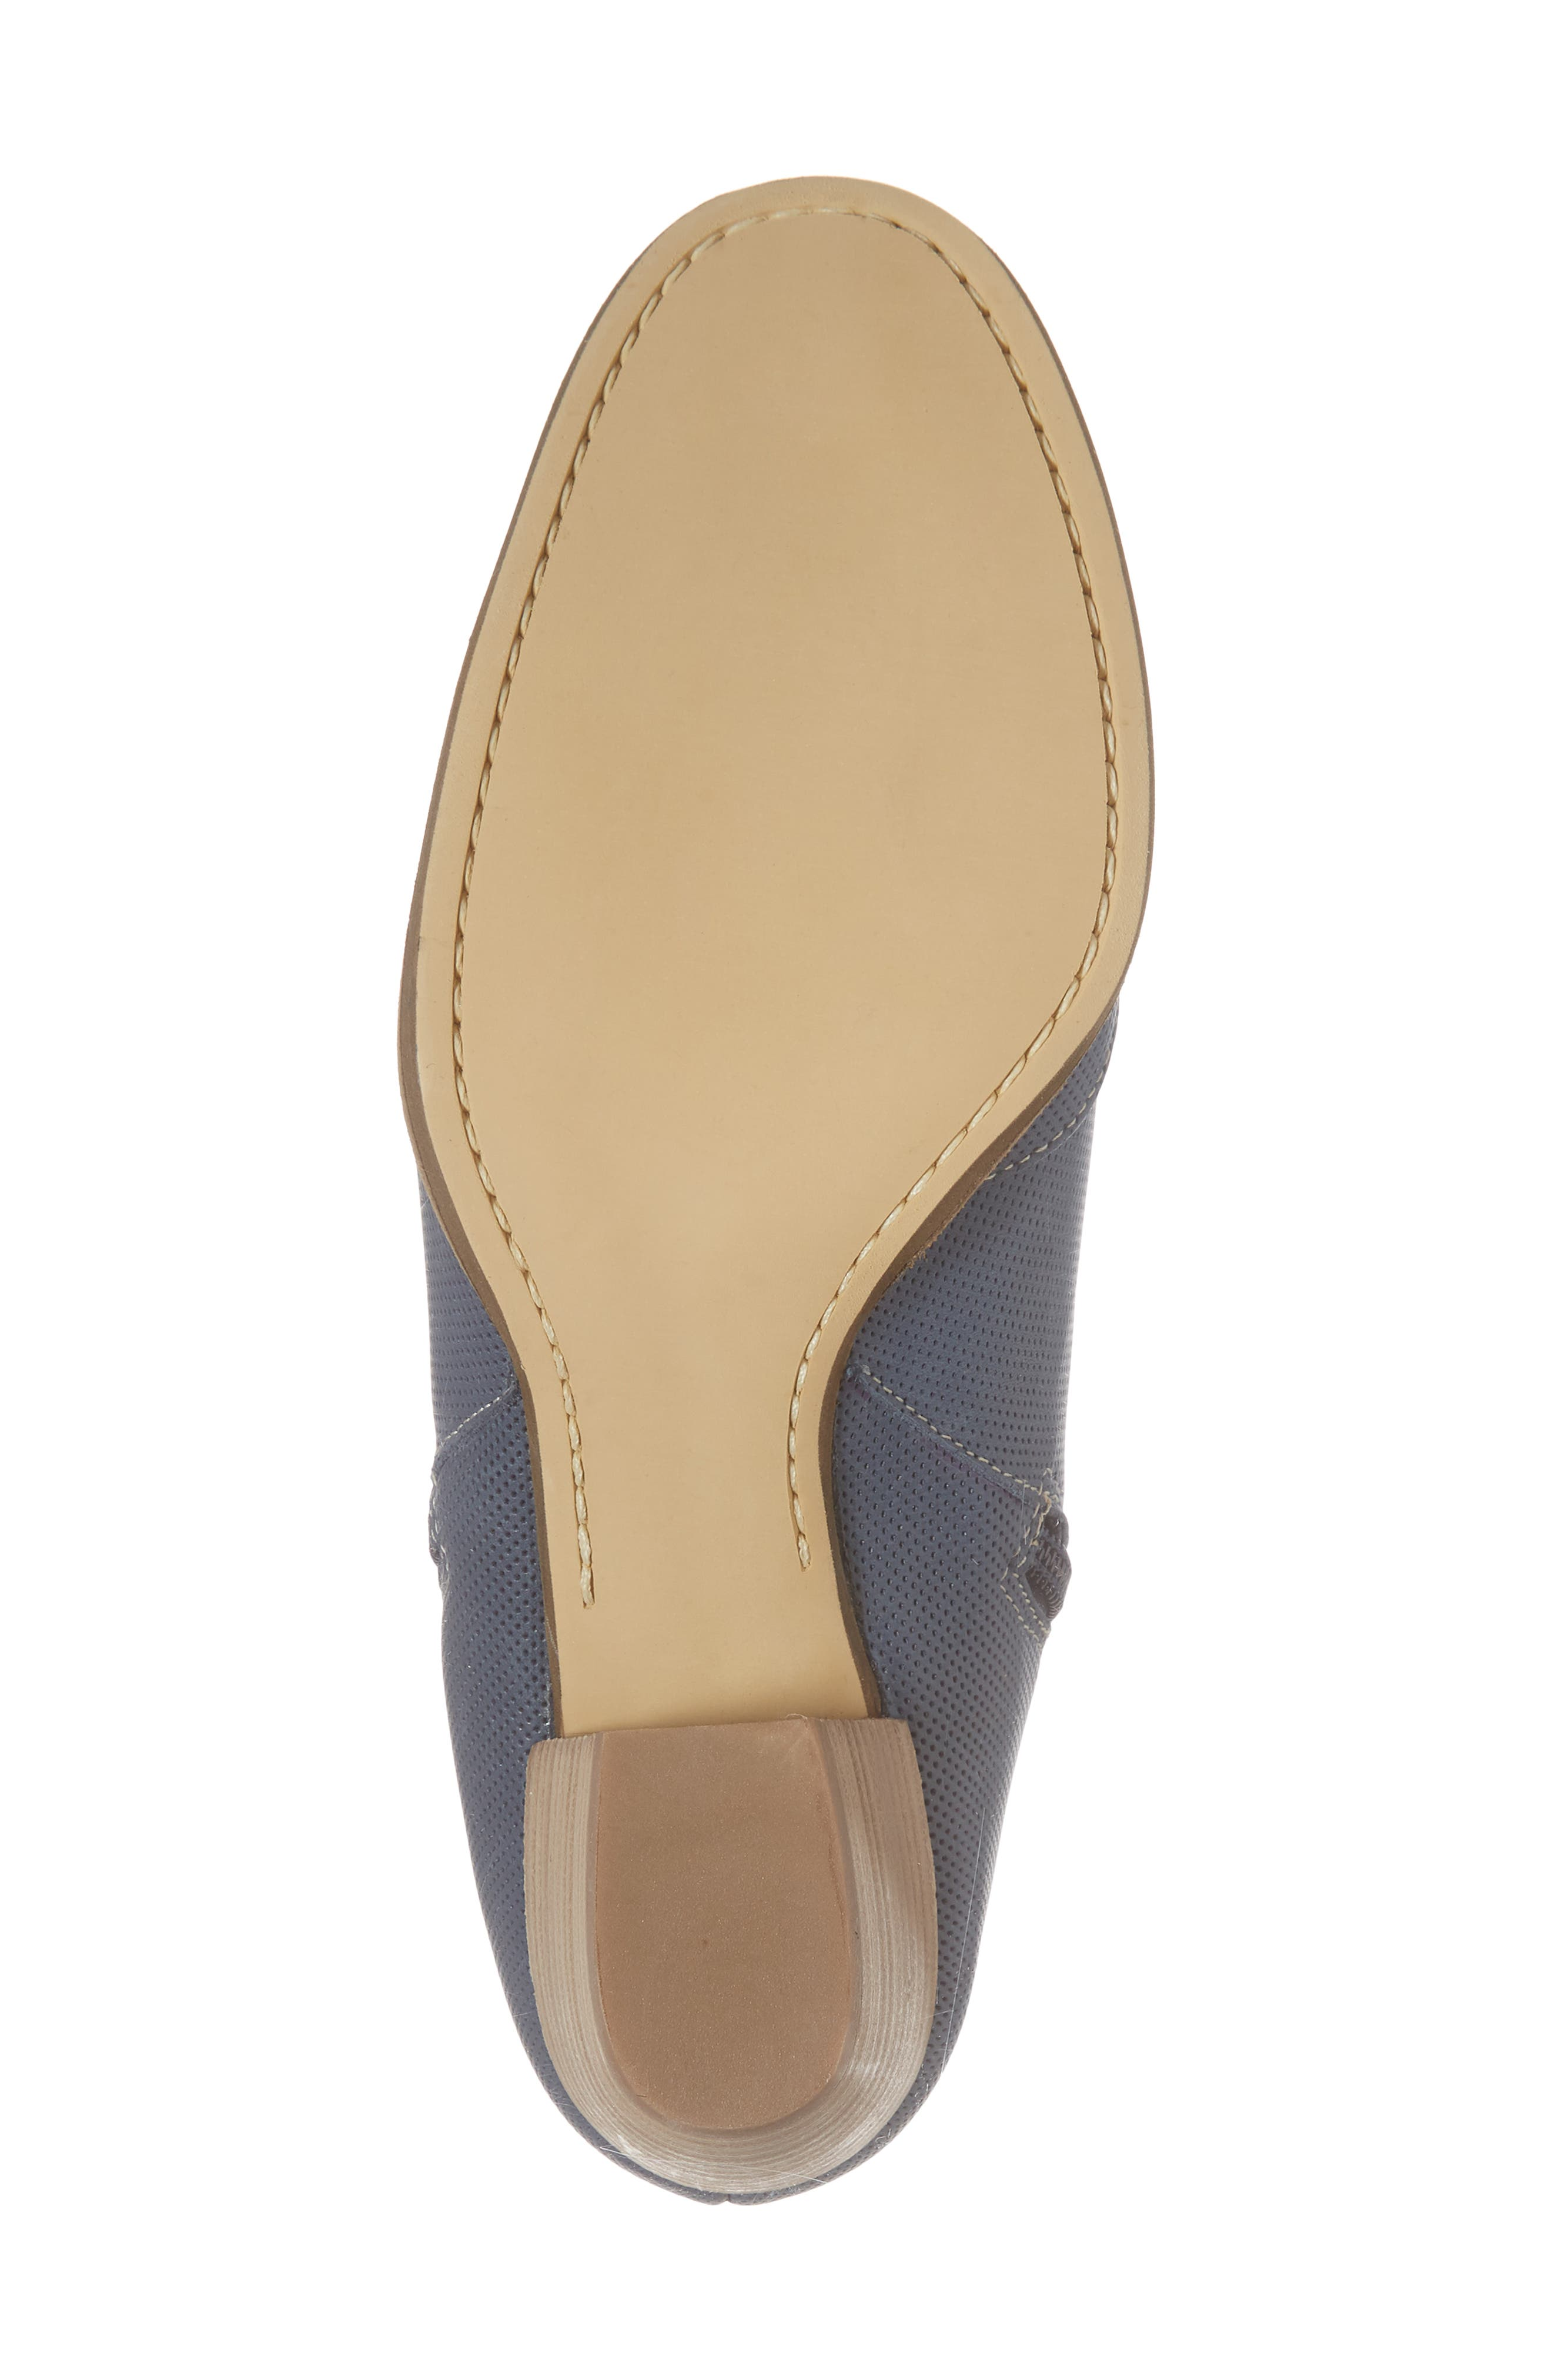 Robin Bootie,                             Alternate thumbnail 6, color,                             Blue Leather